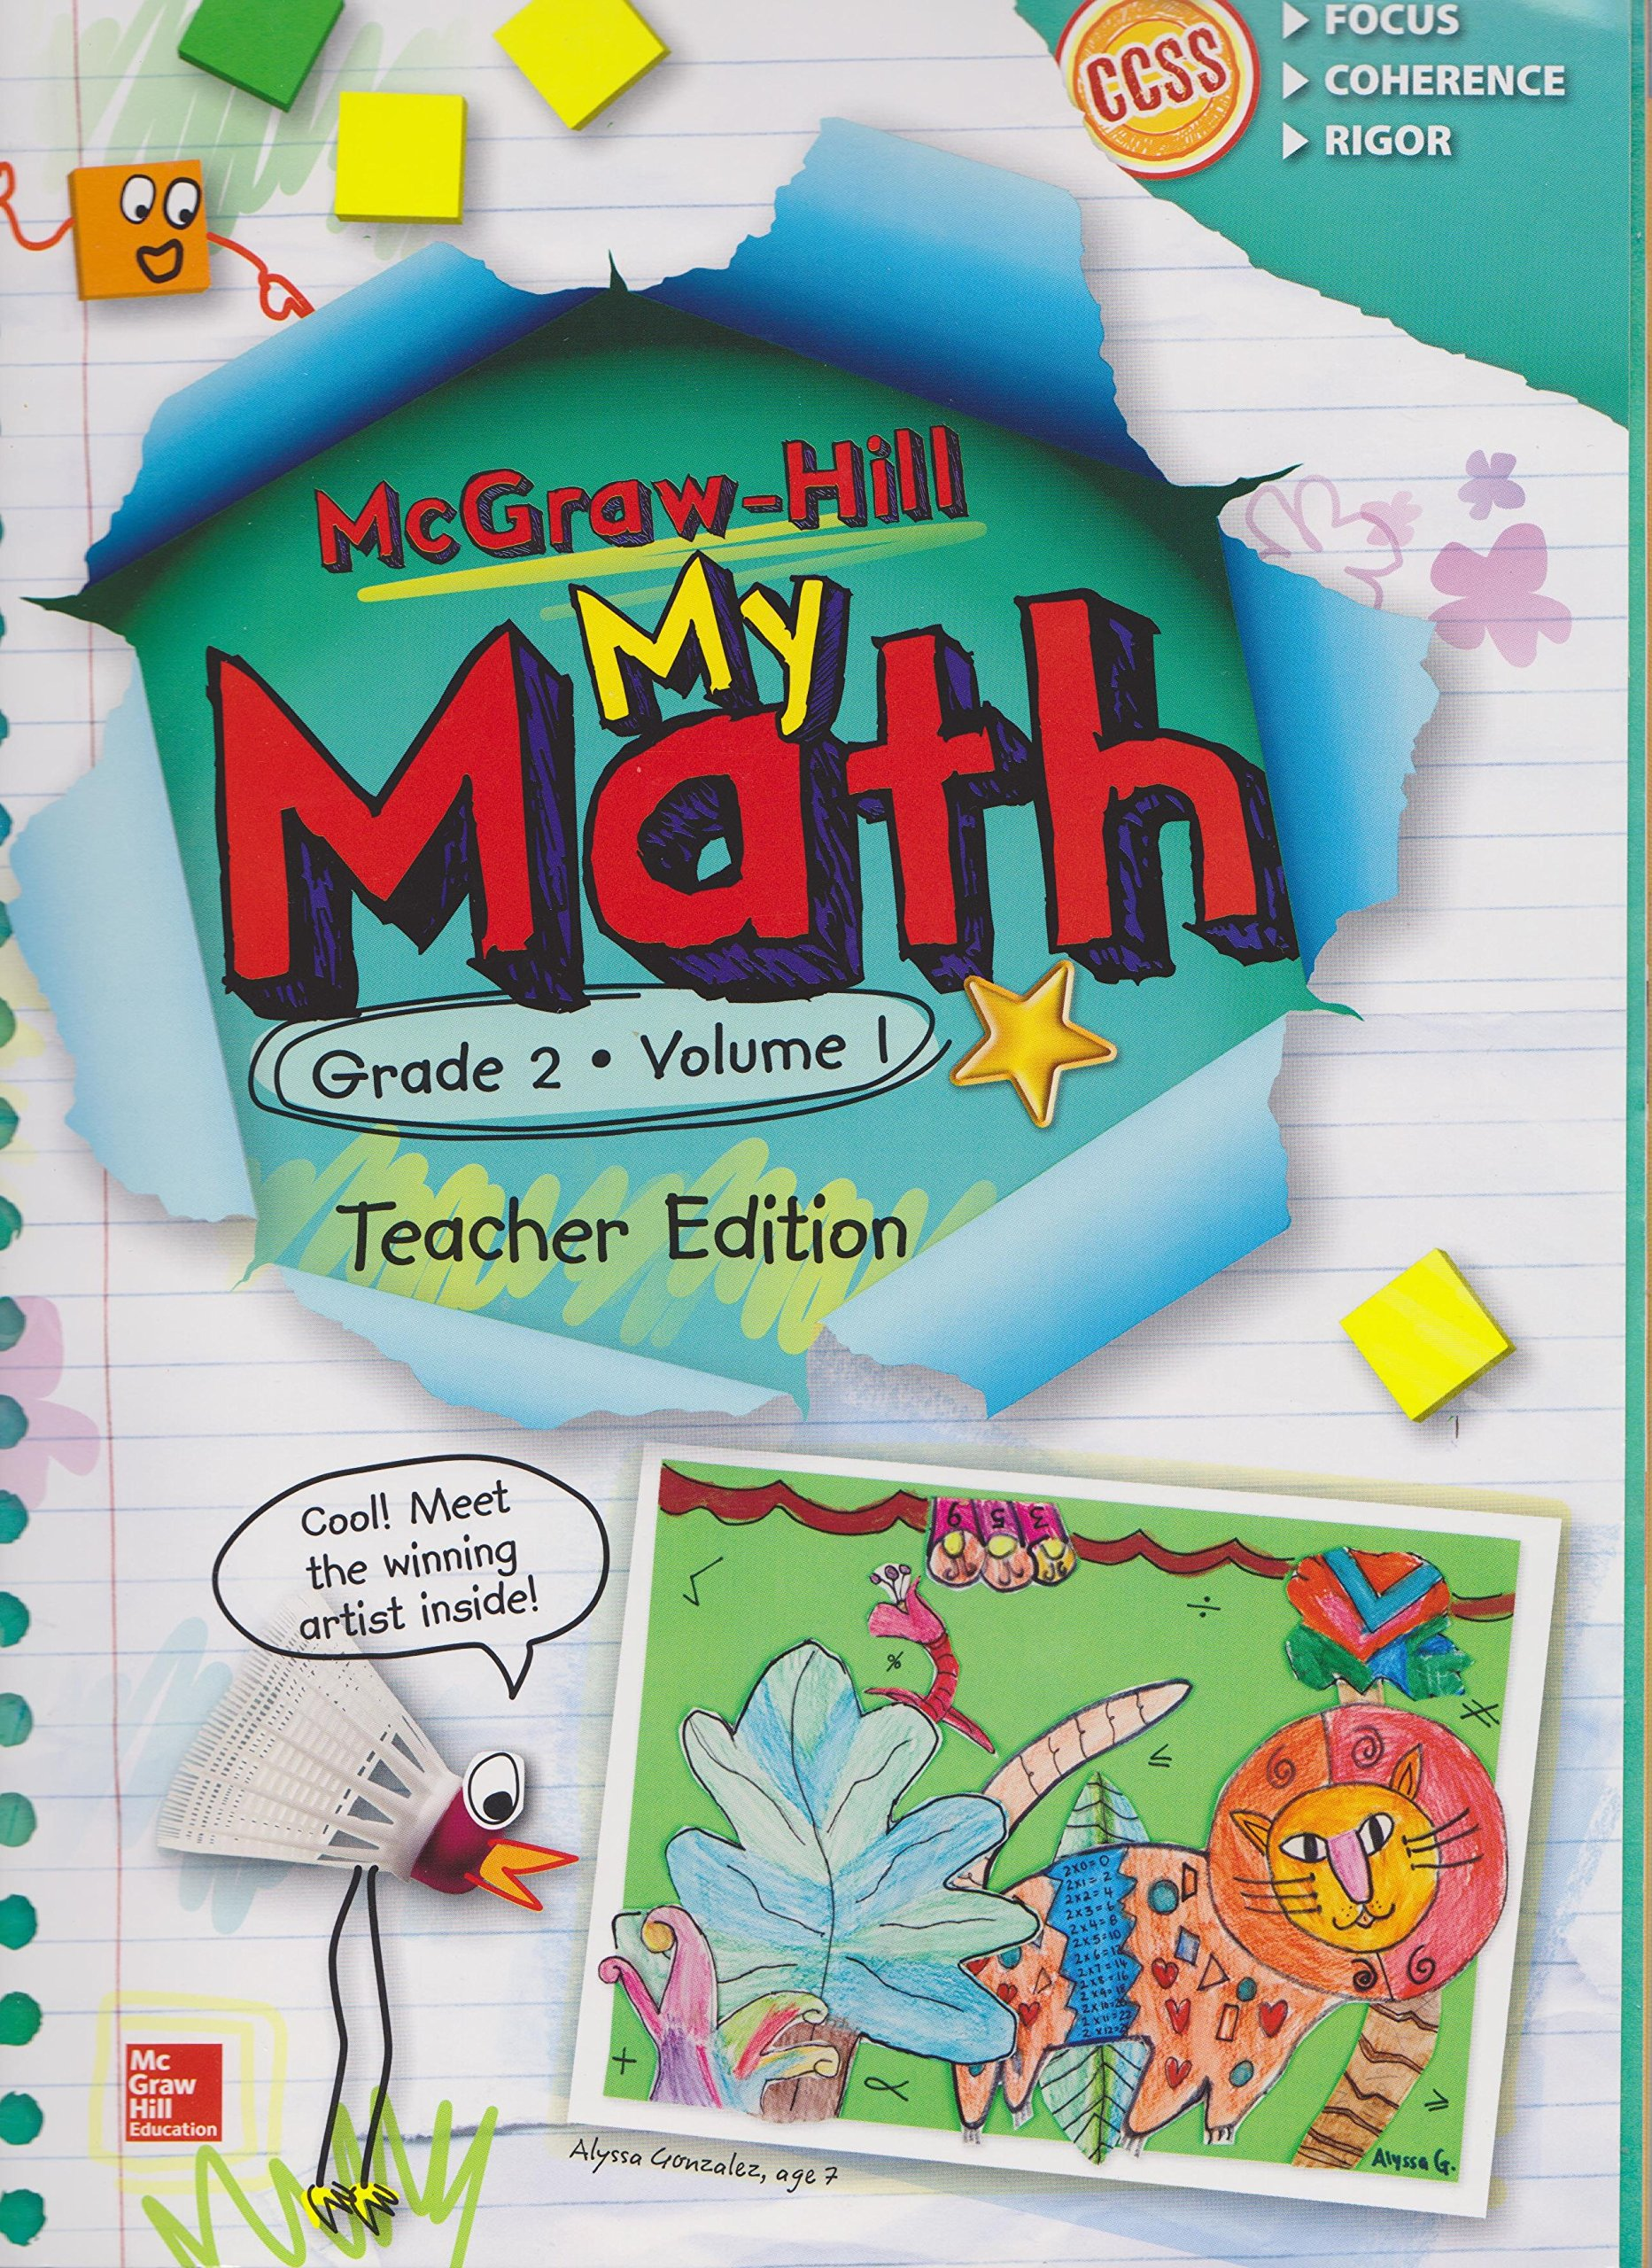 Amazon.com: My Math Grade 2 Volume 1 Teacher Edition (9780021383955 ...